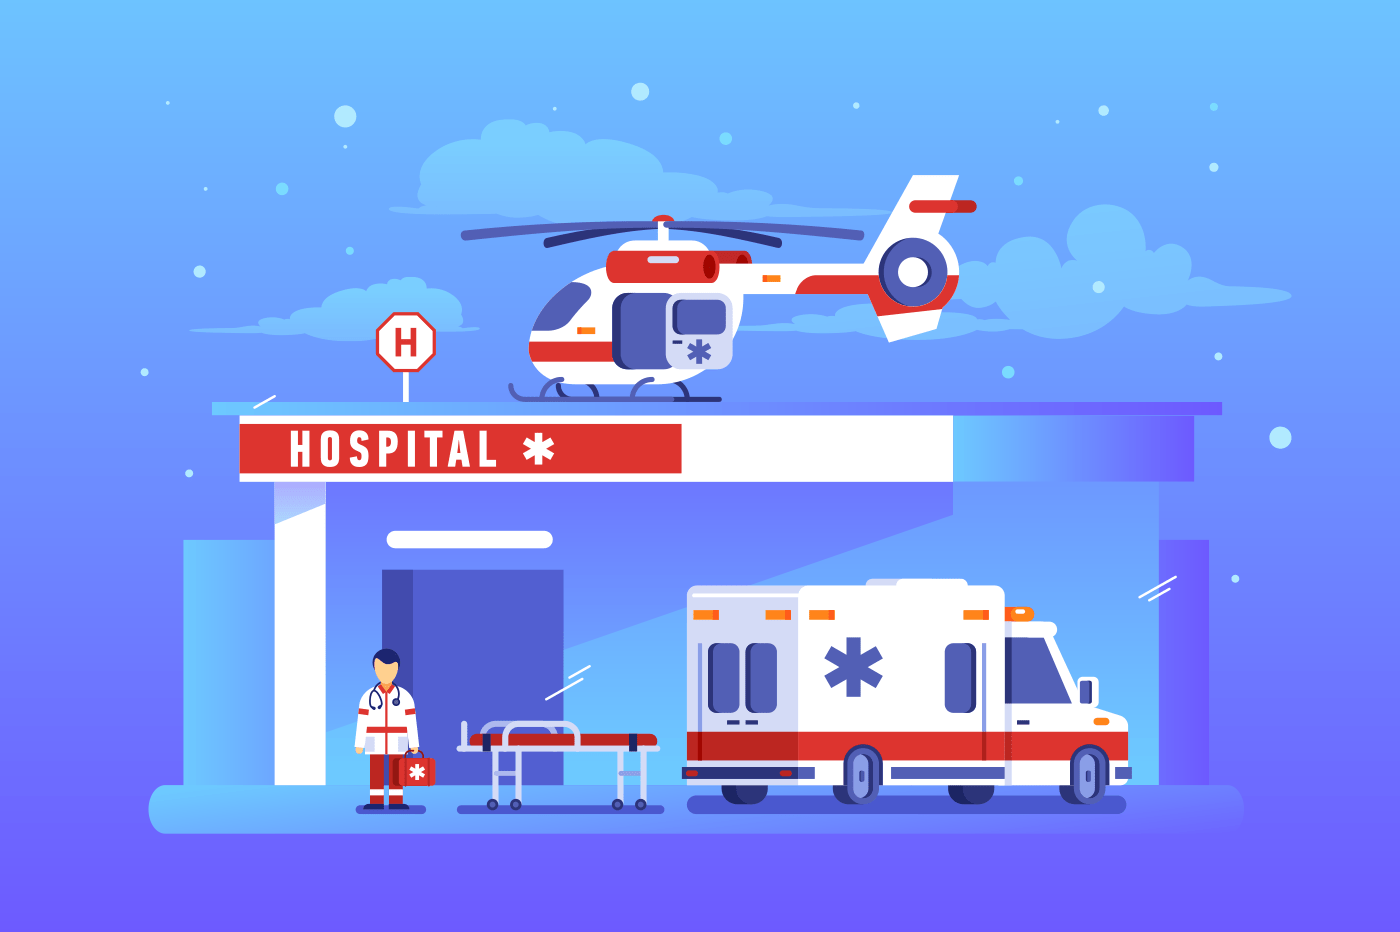 Hospital building with ambulance car and helicopter